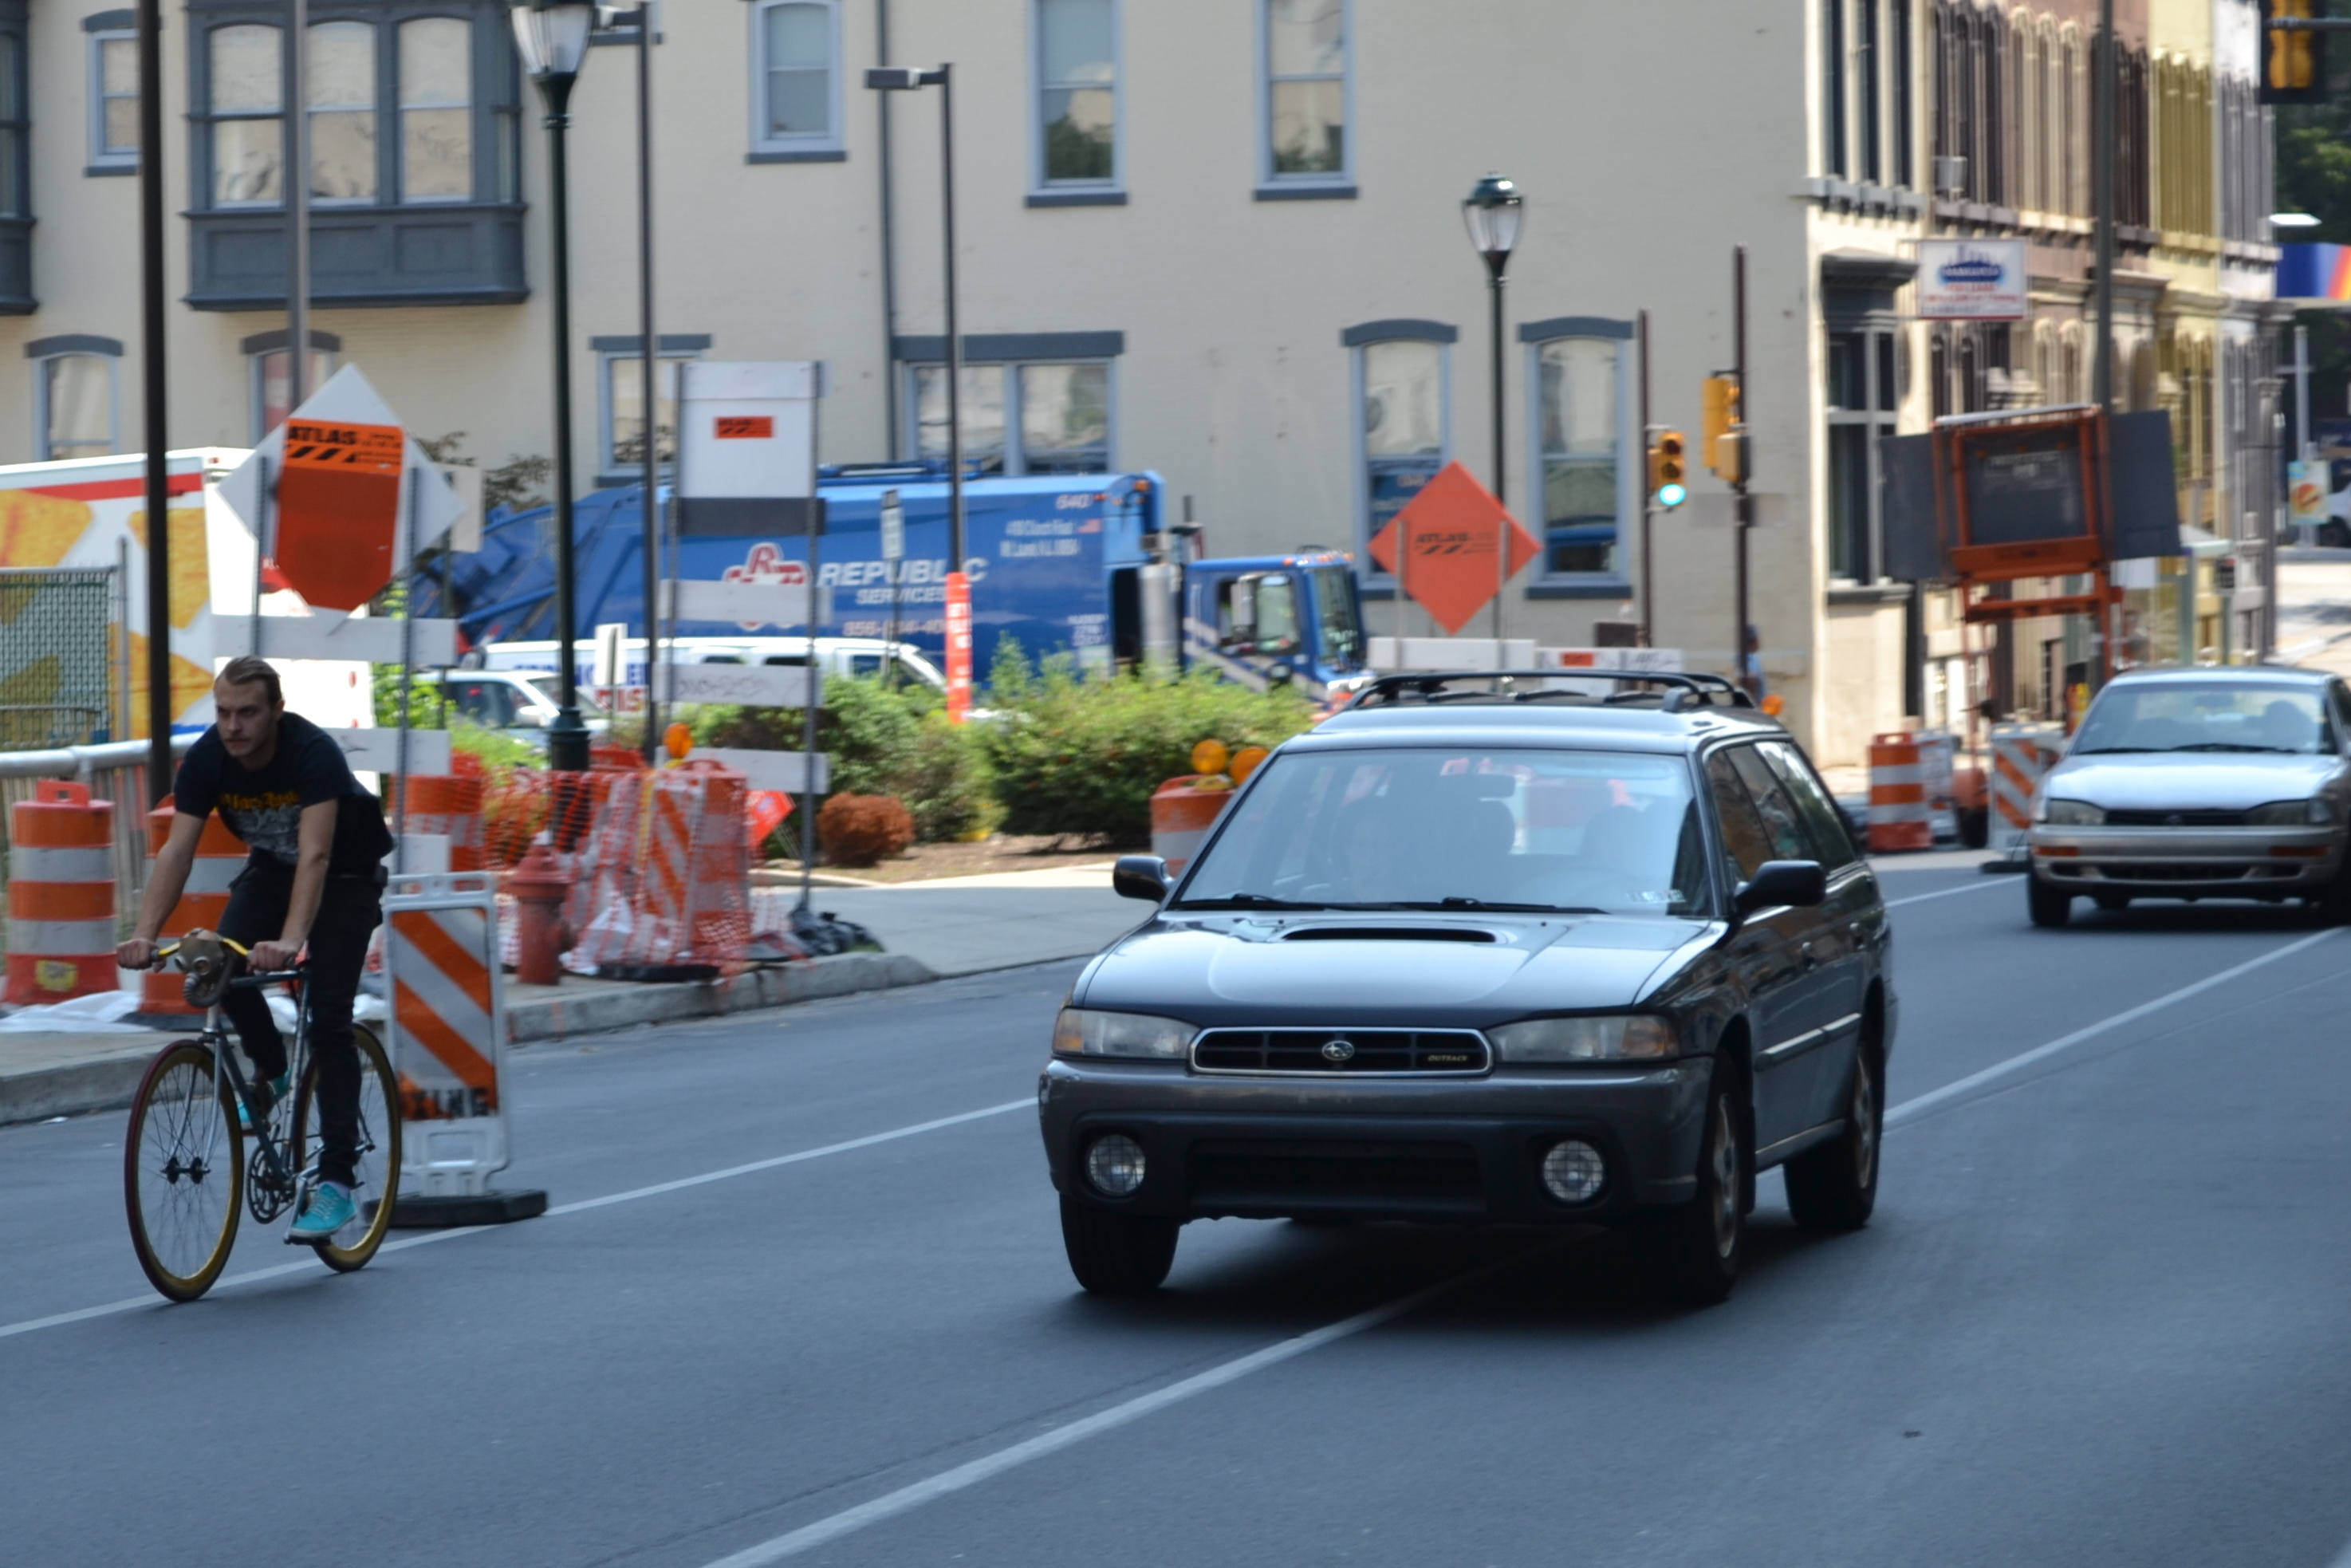 Complete streets bill clarifies more than it changes